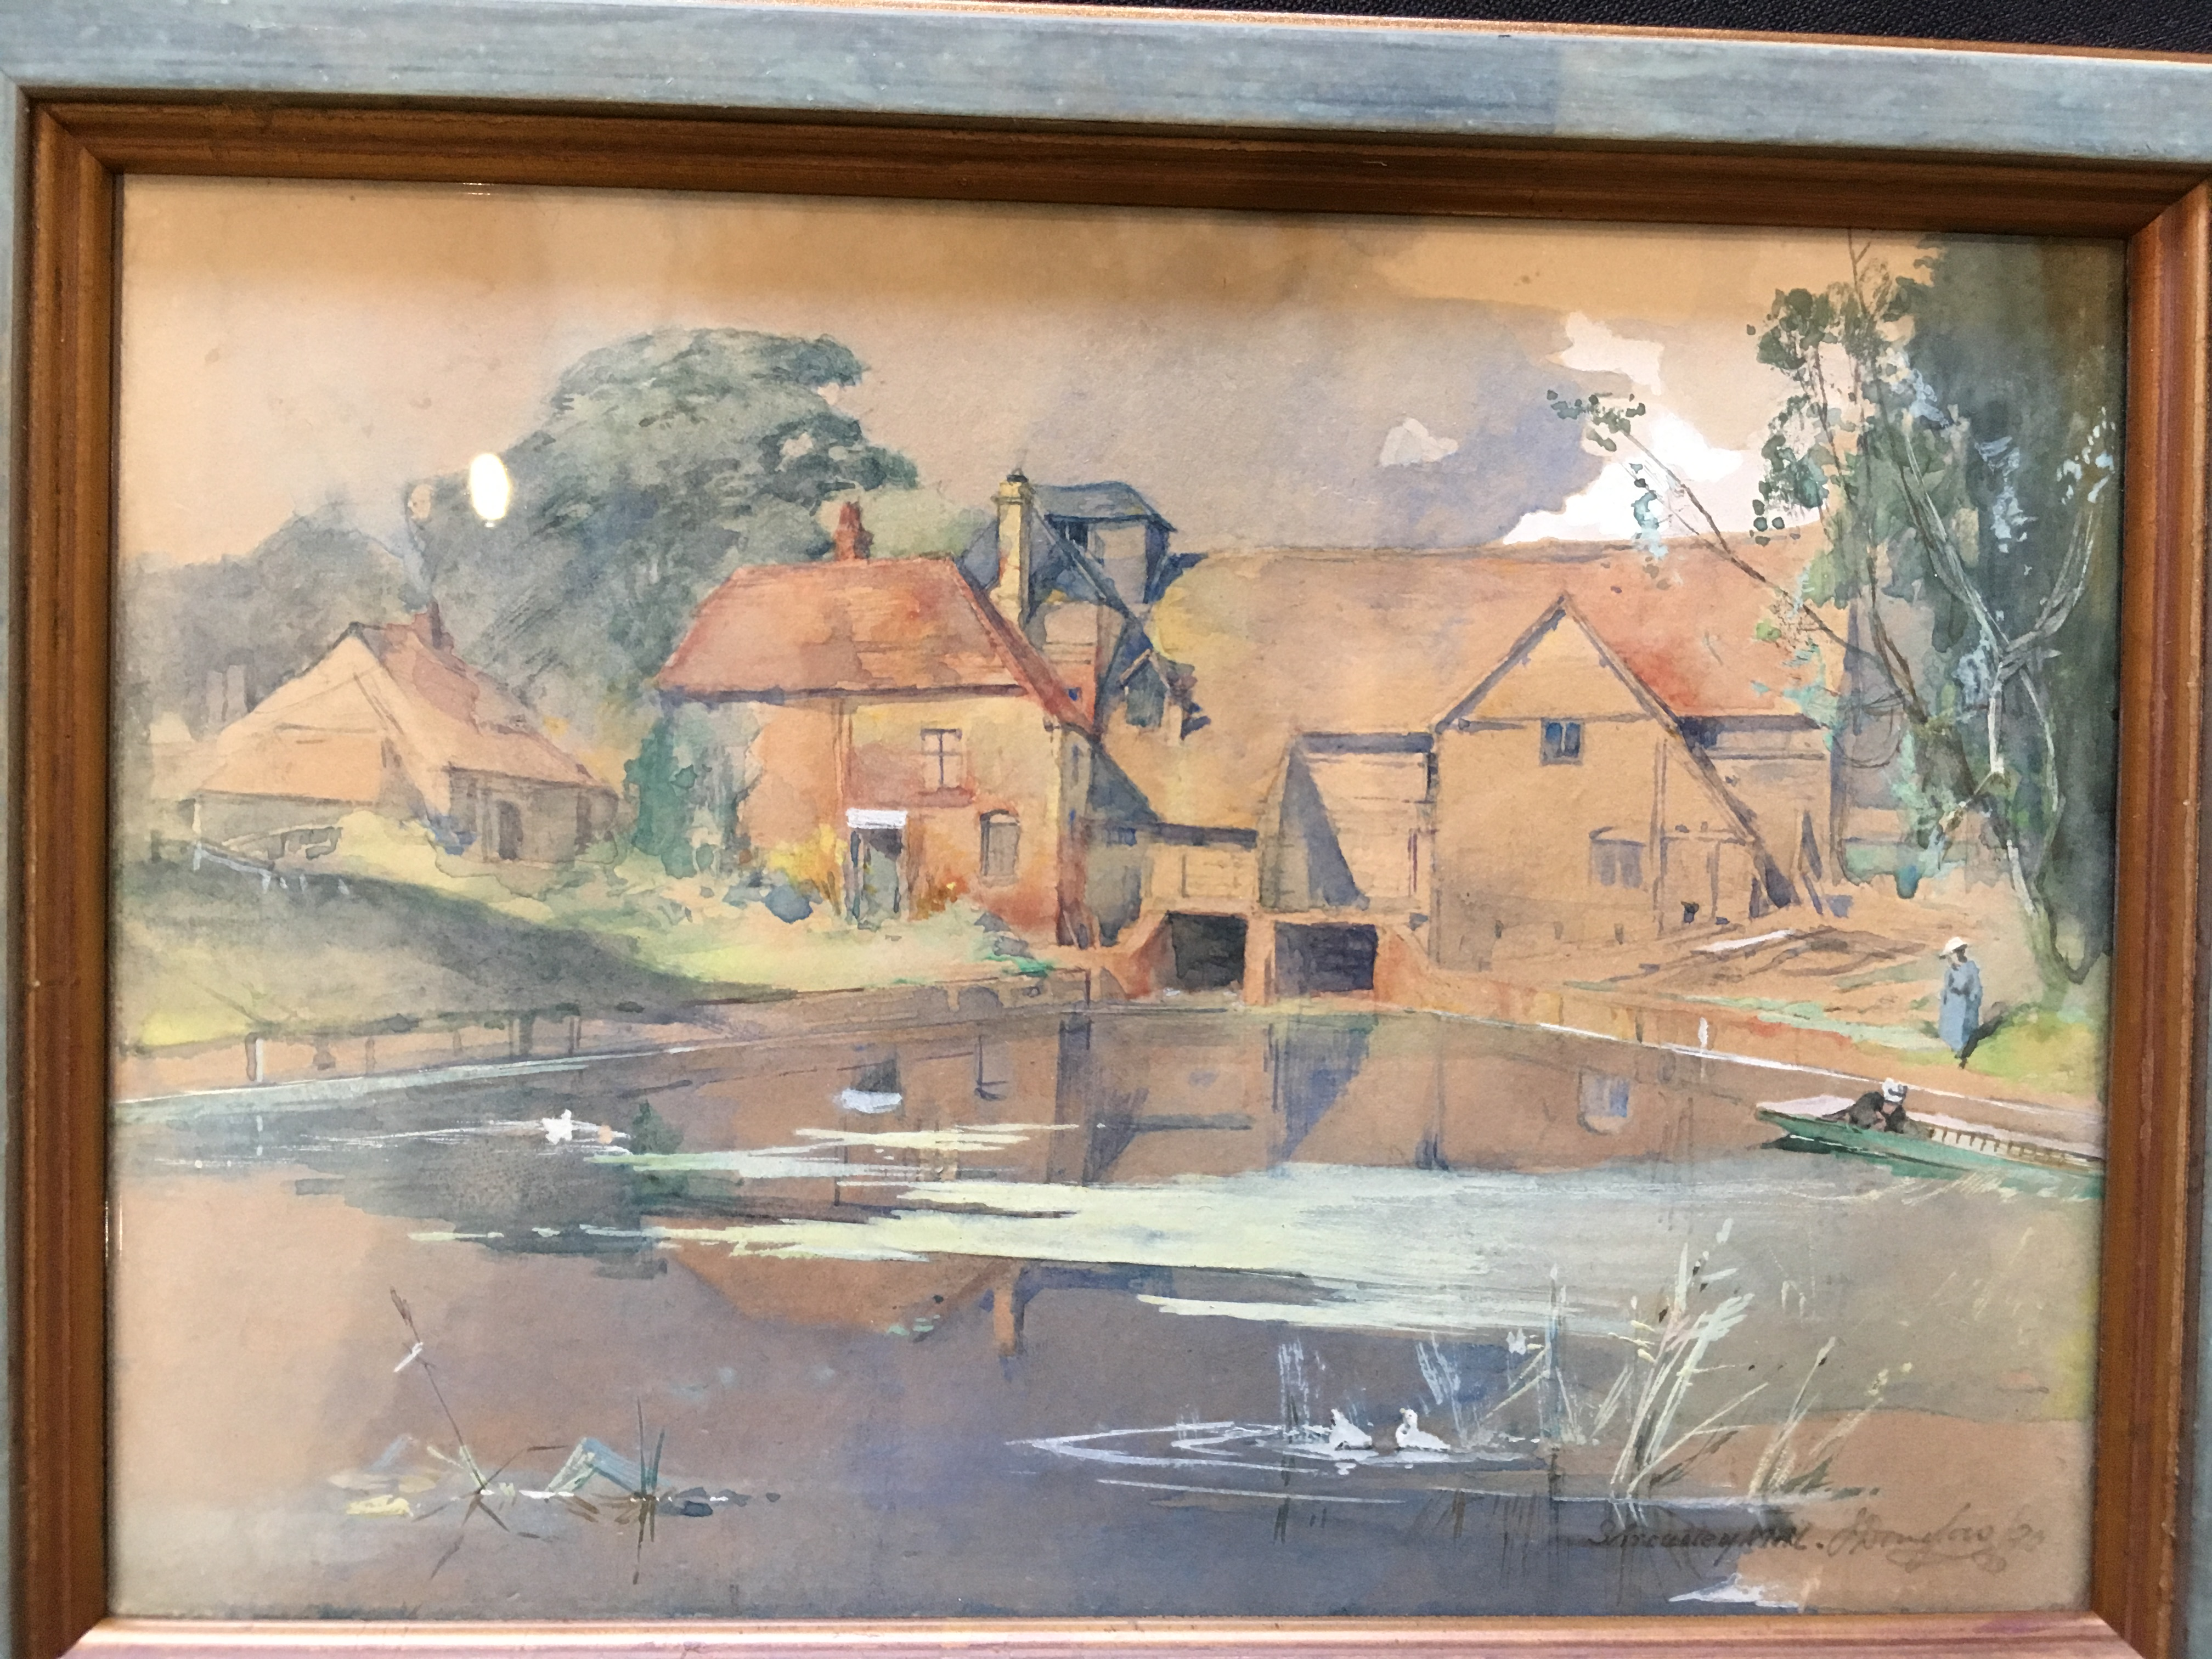 Lot 116 - JAMES DOUGLAS (1858-1911) CLEVE MILL ON THE THAMES sold together with Streatley Mill on the Thames